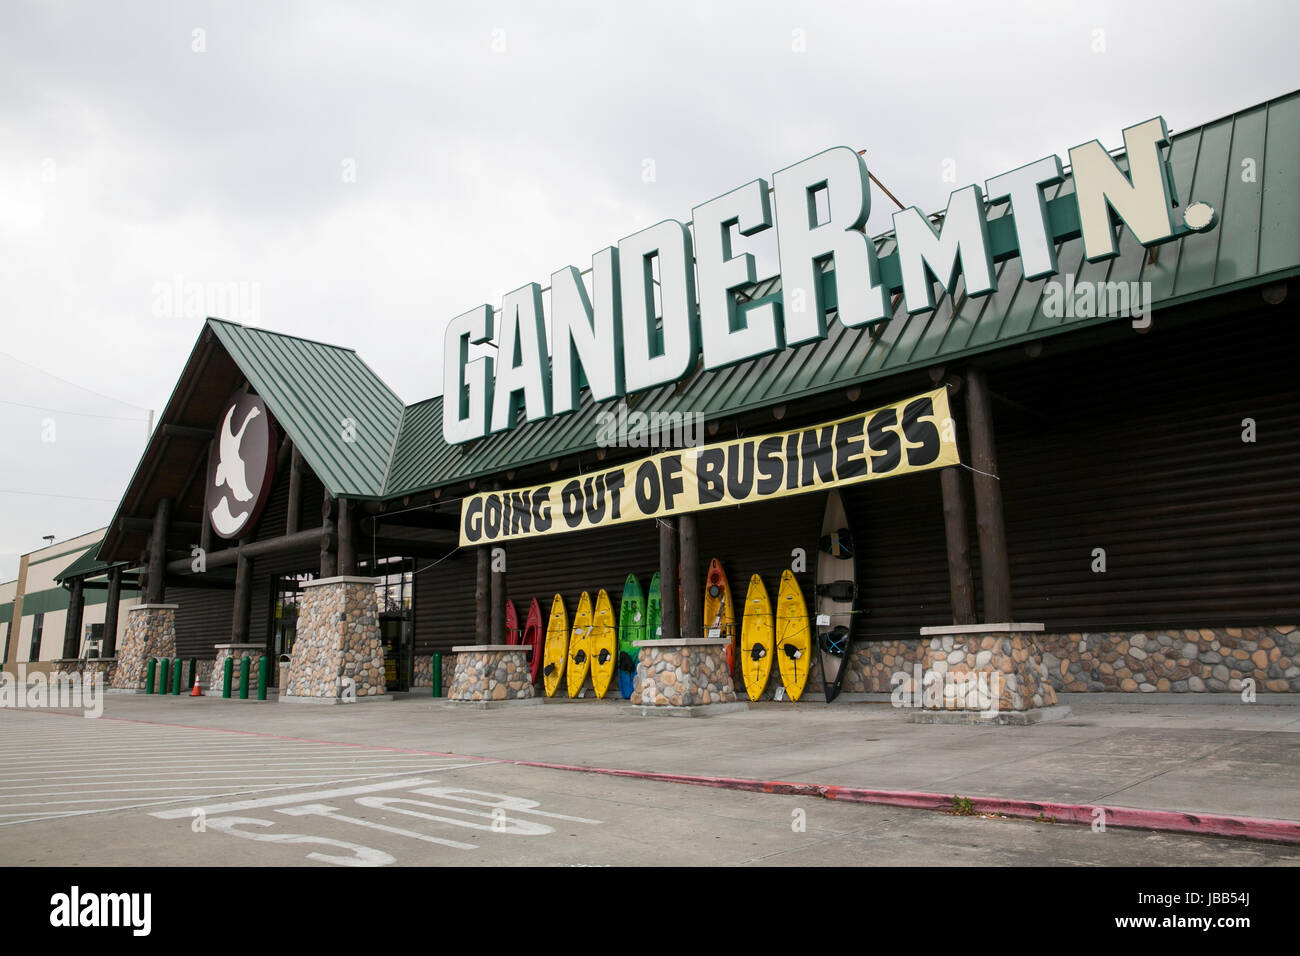 A 'Going Out Of Business' banner at a Gander Mountain retail store in Houston, Texas, on May 28, 2017. - Stock Image